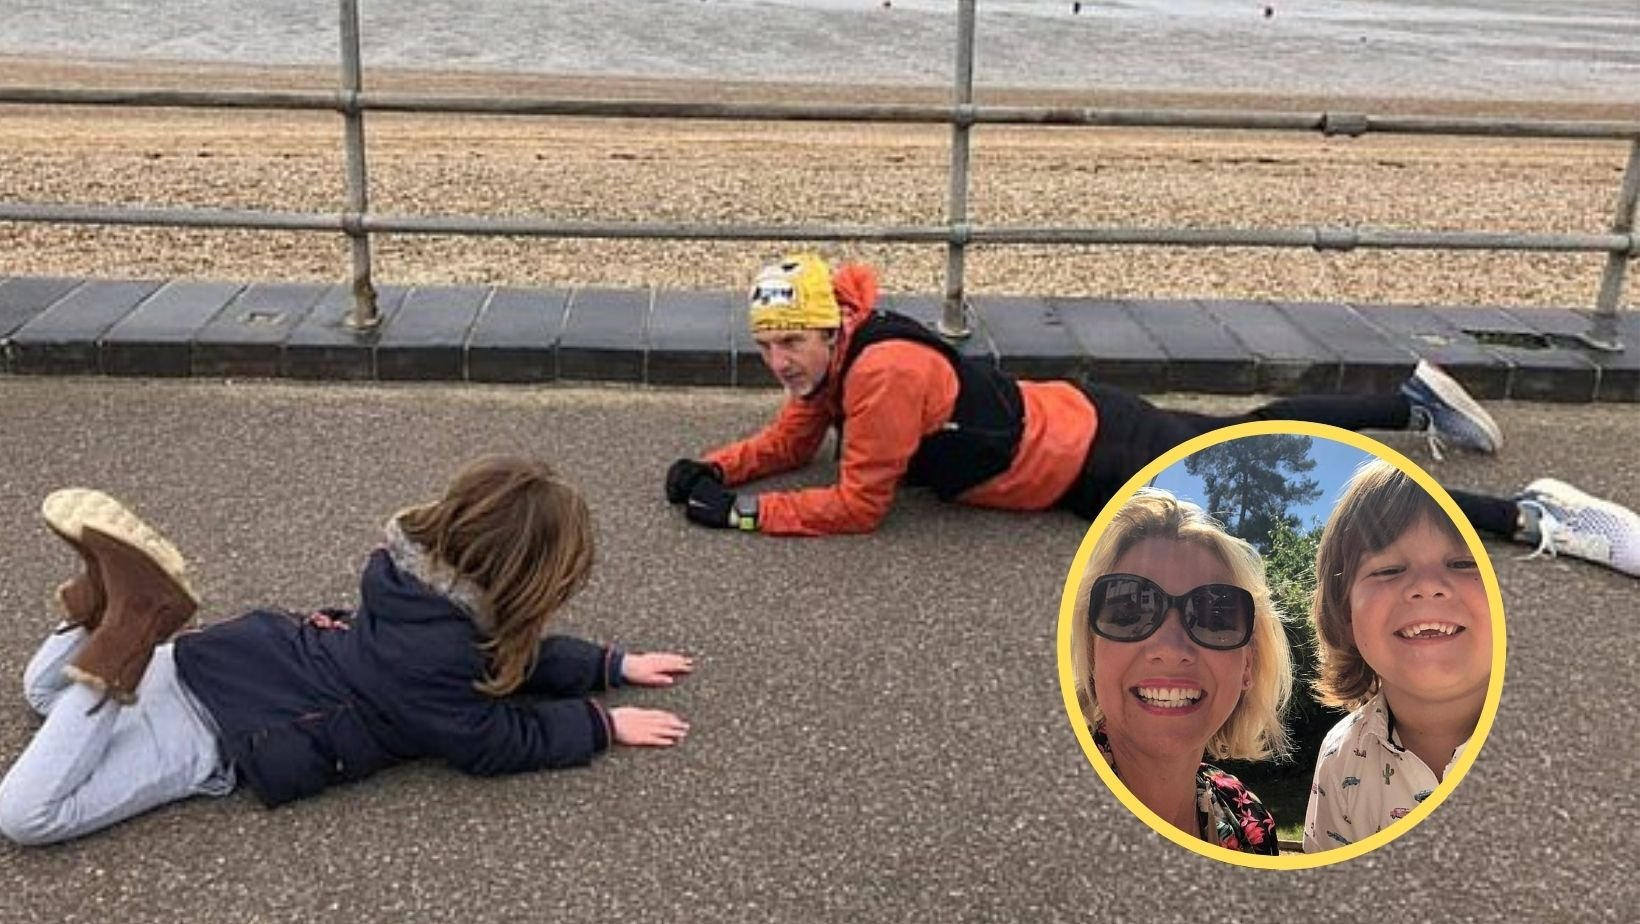 1 72.jpg?resize=412,232 - Mom Praises 'Hero' Passerby For Lying On The Floor To Stop Her Autistic Son From Having A Meltdown